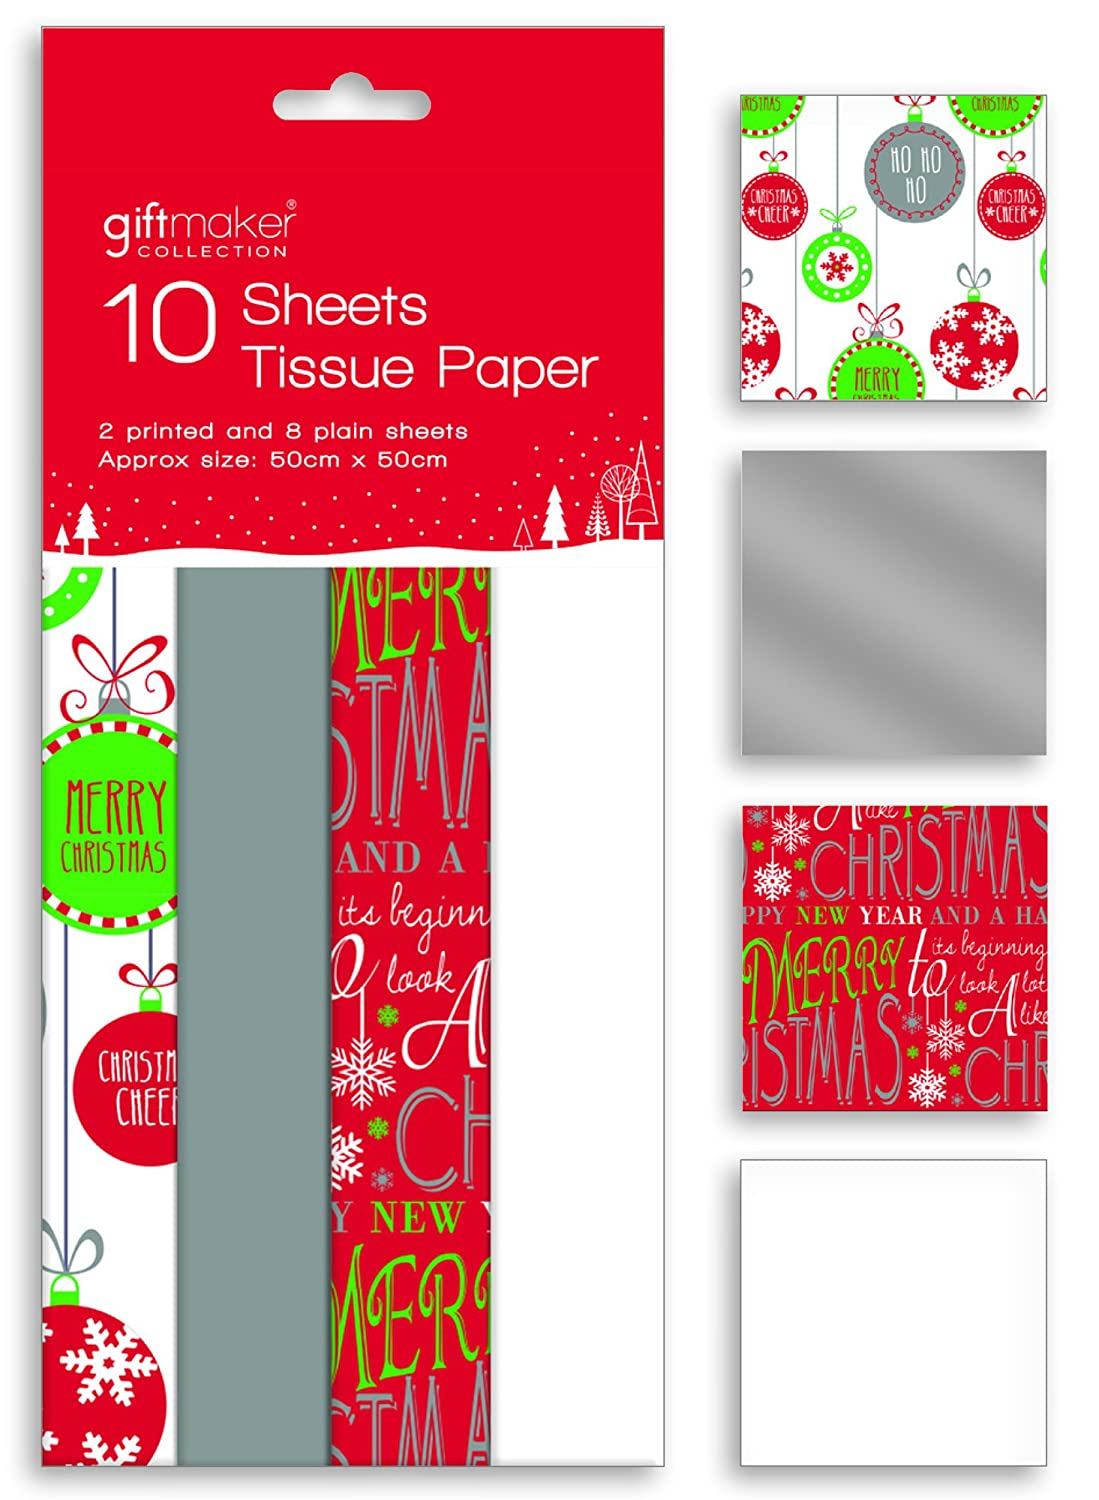 10 Sheets of Christmas Tissue Paper Gift Wrap Red White Silver & Bauble Designs Anker International